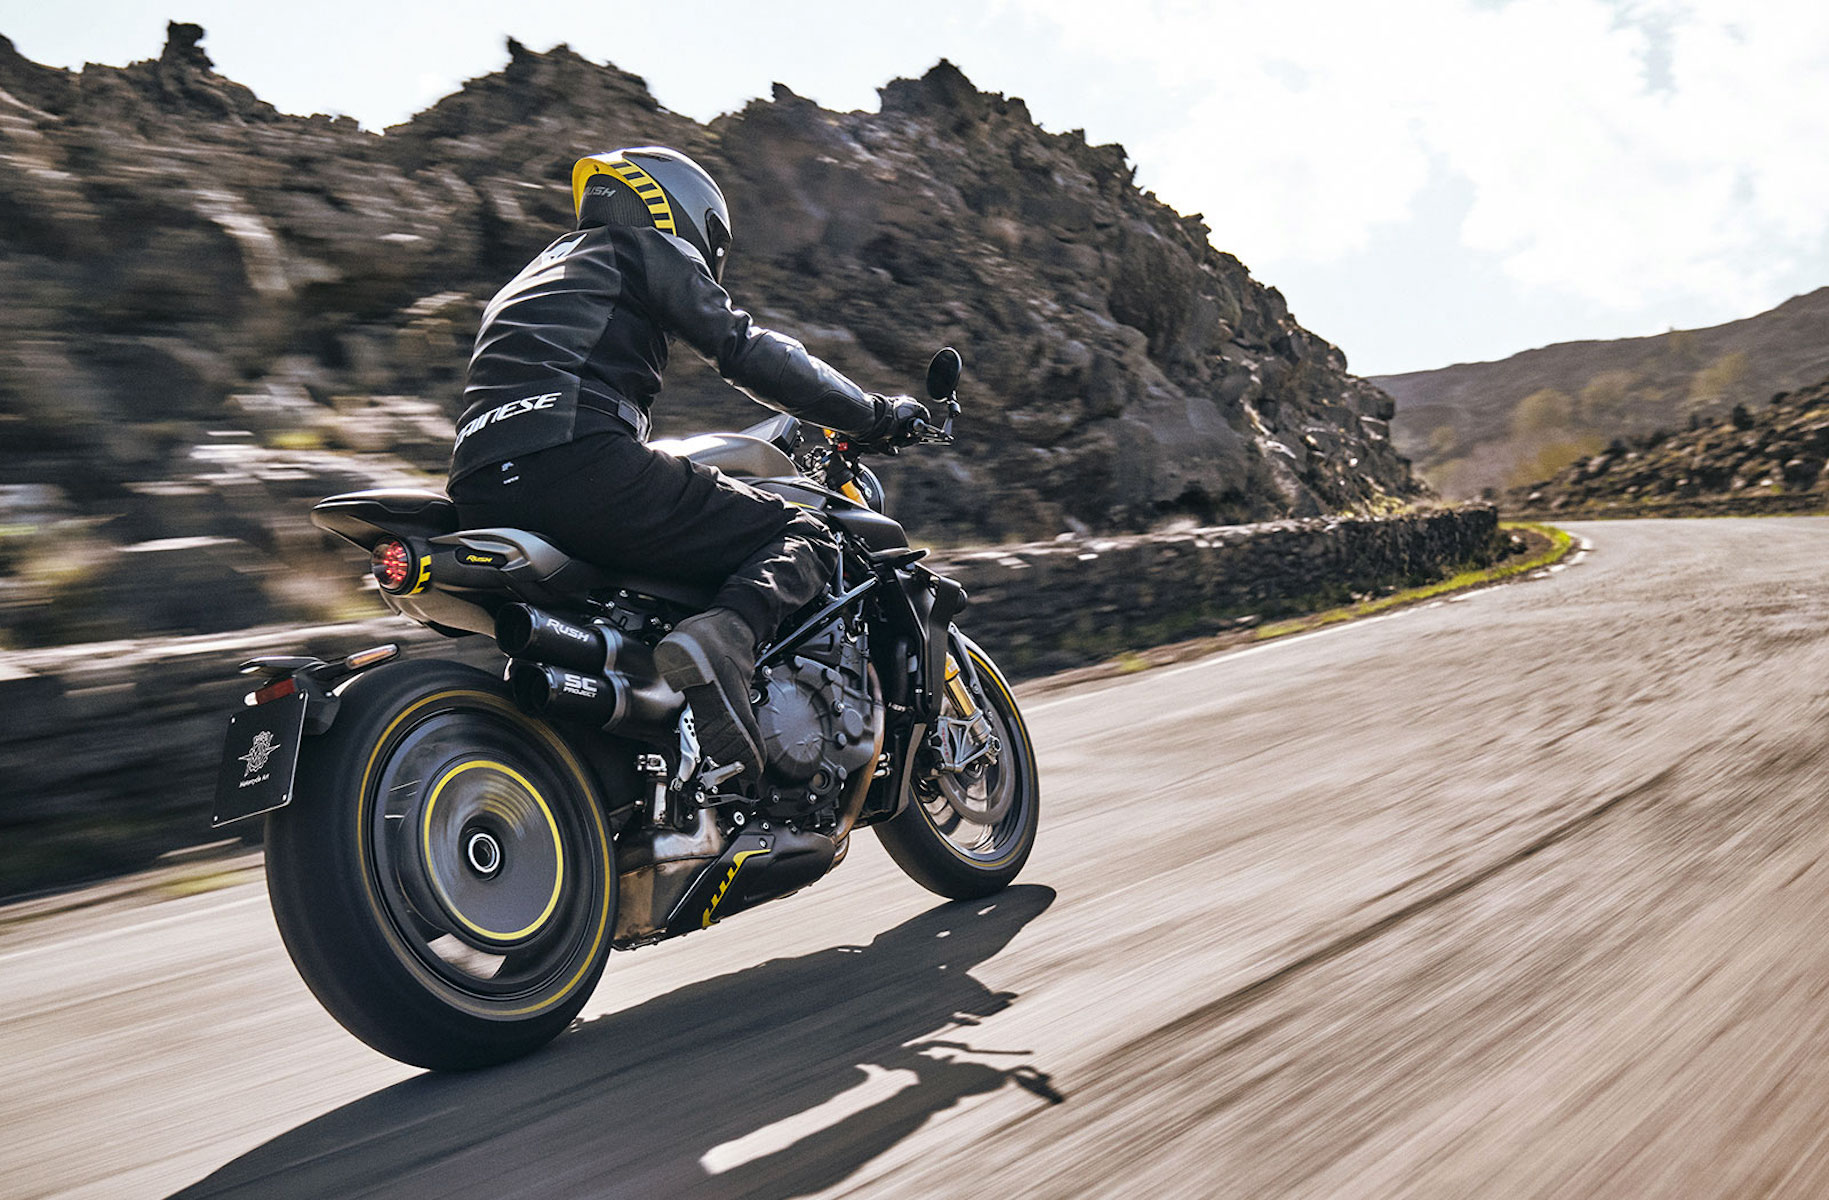 MV Agusta motorcycle takes a corner somewhere in Europe